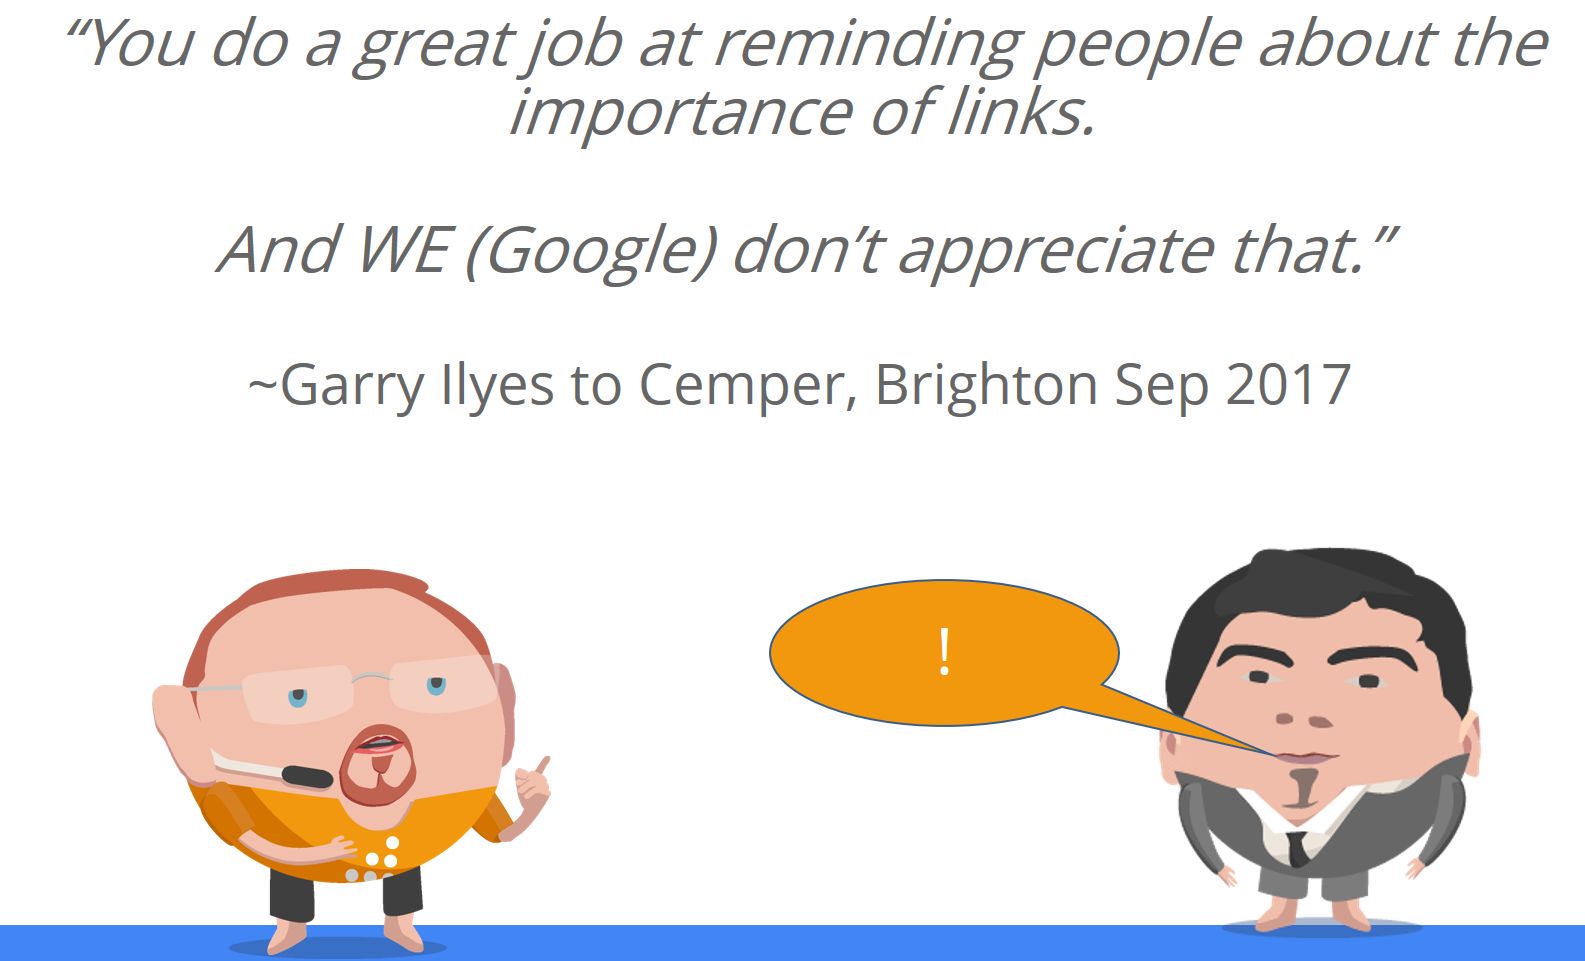 Cemper Reminds People About Links and Google doesn't like it.